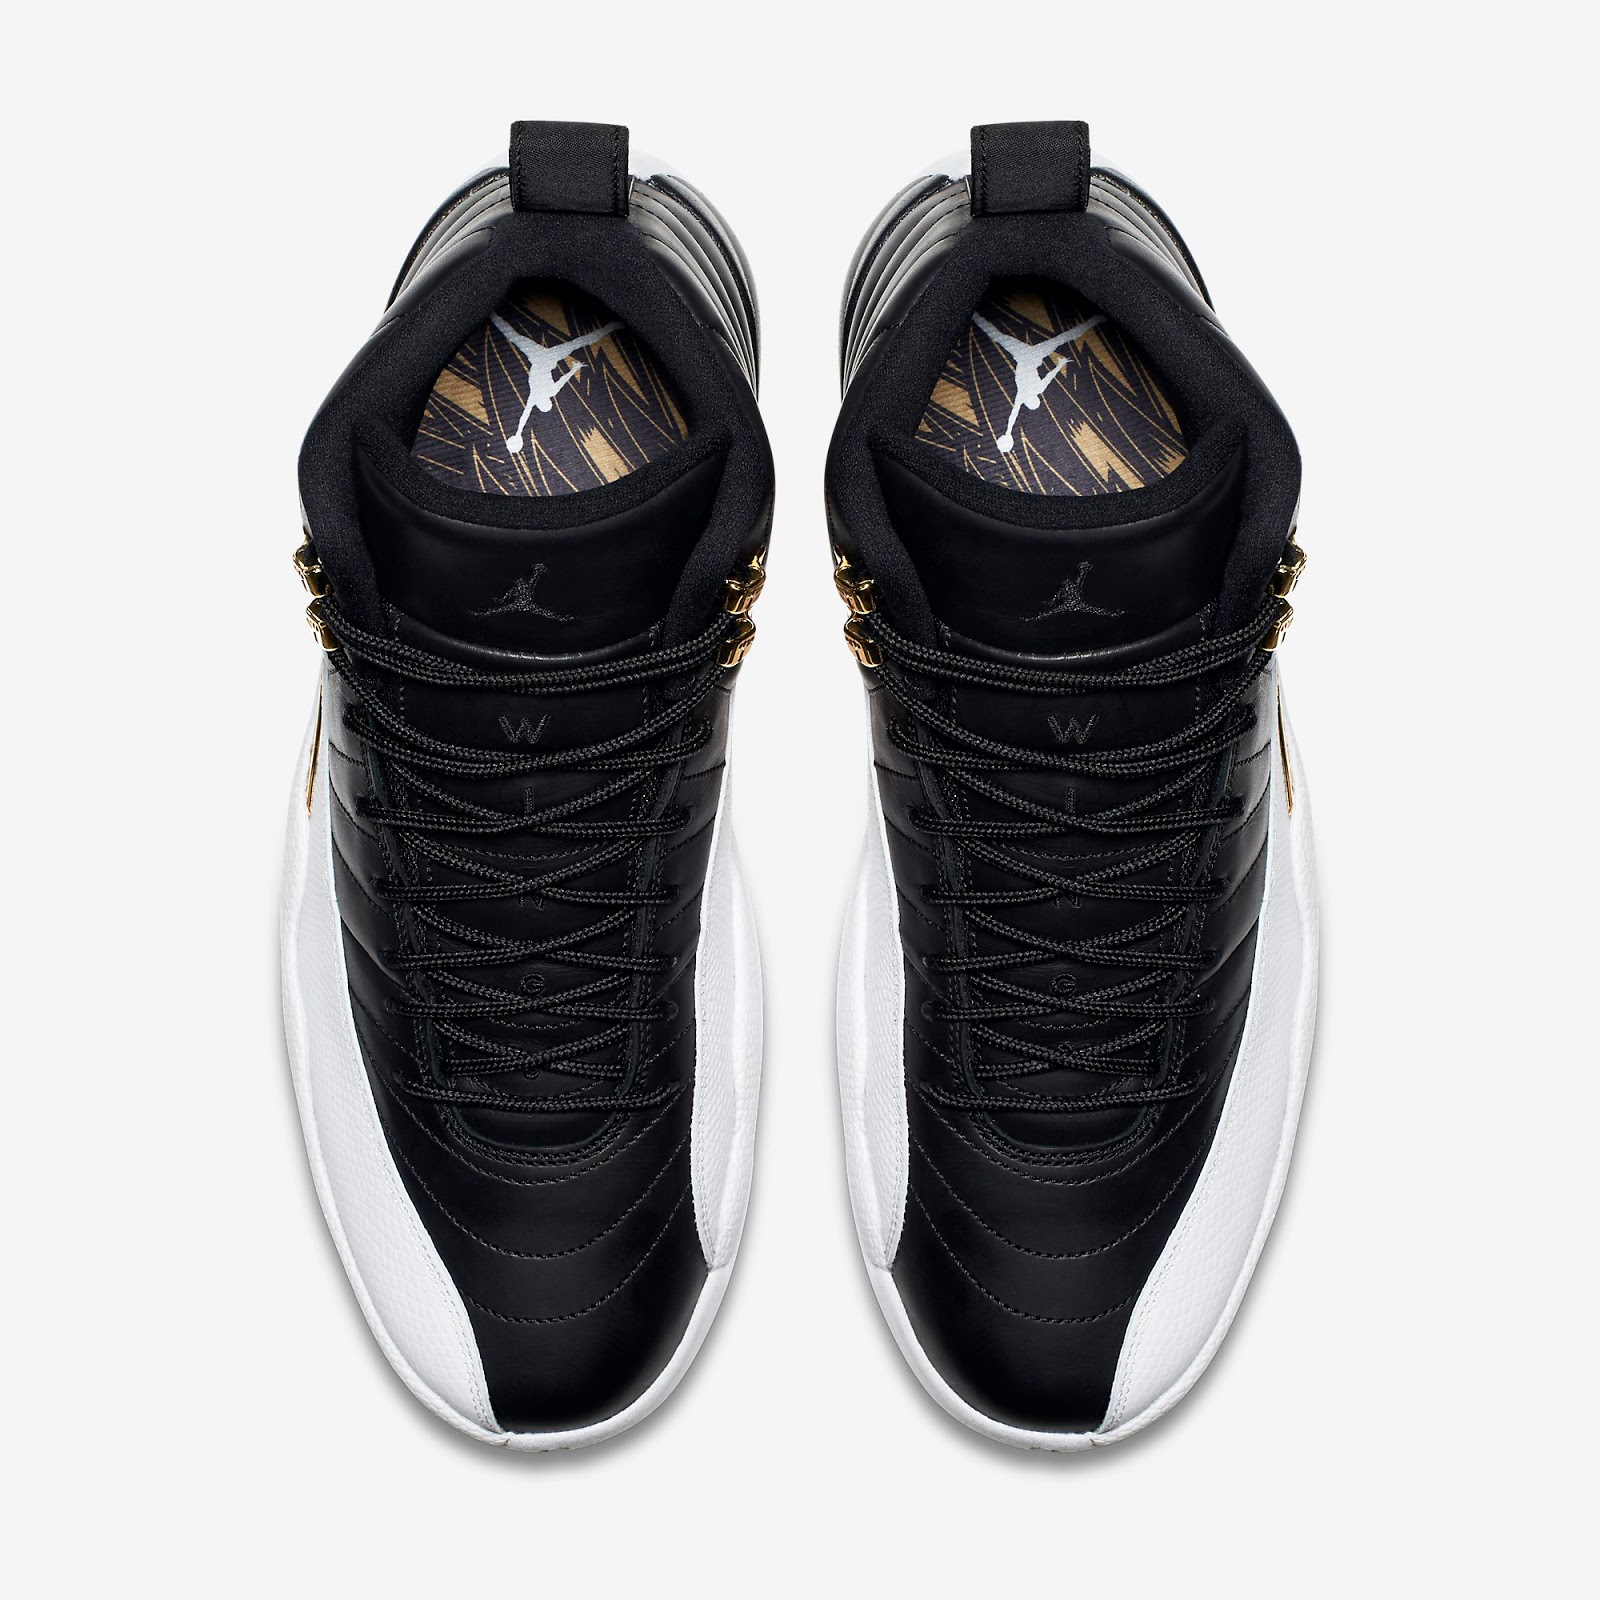 3854ebd46882b2 ajordanxi Your  1 Source For Sneaker Release Dates  Air Jordan 12 ...